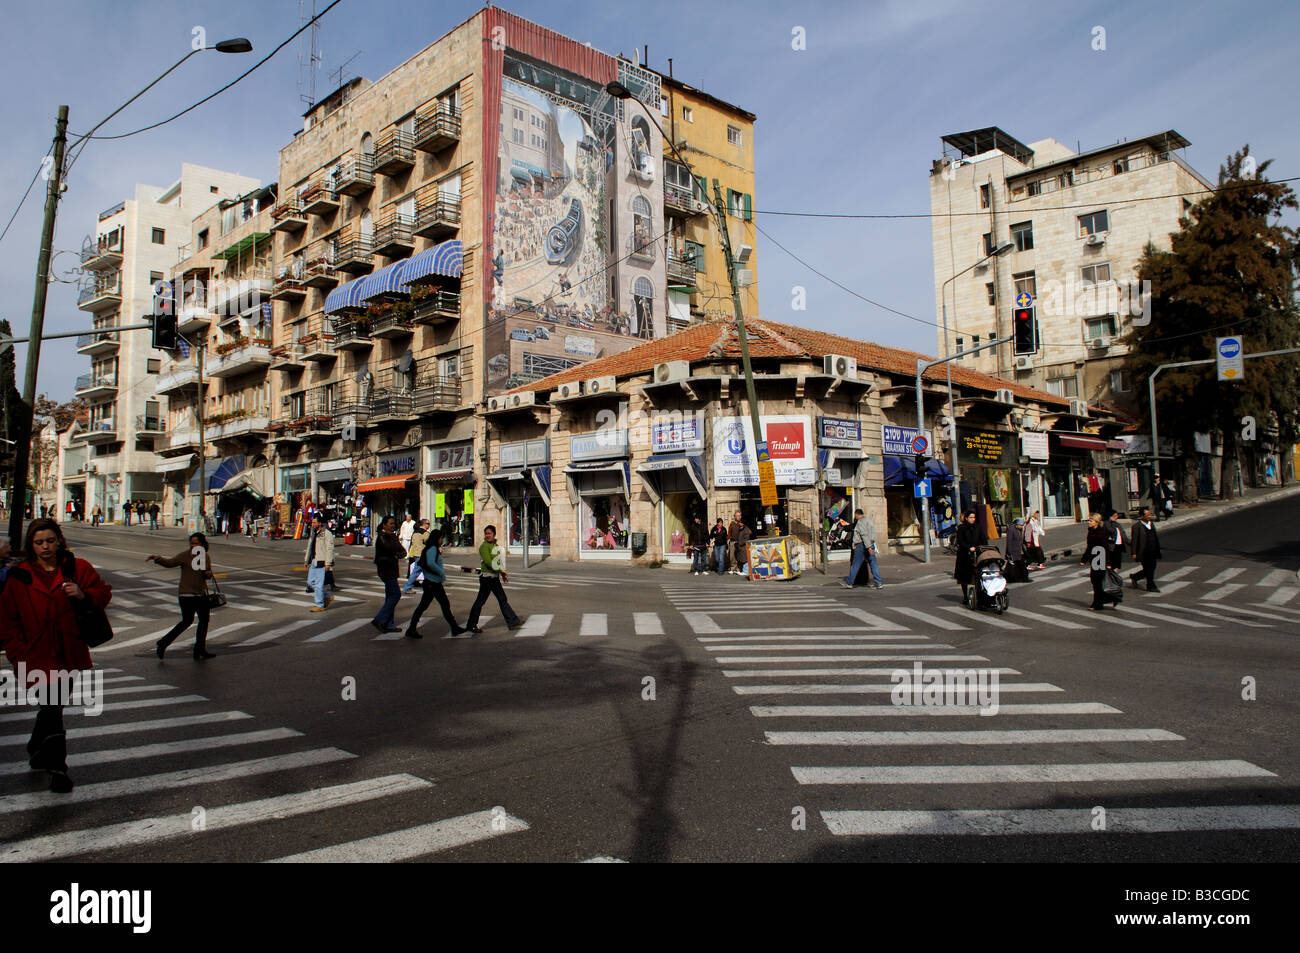 The heart of downtown Jerusalem The intersection of Jaffa street and King George st - Stock Image